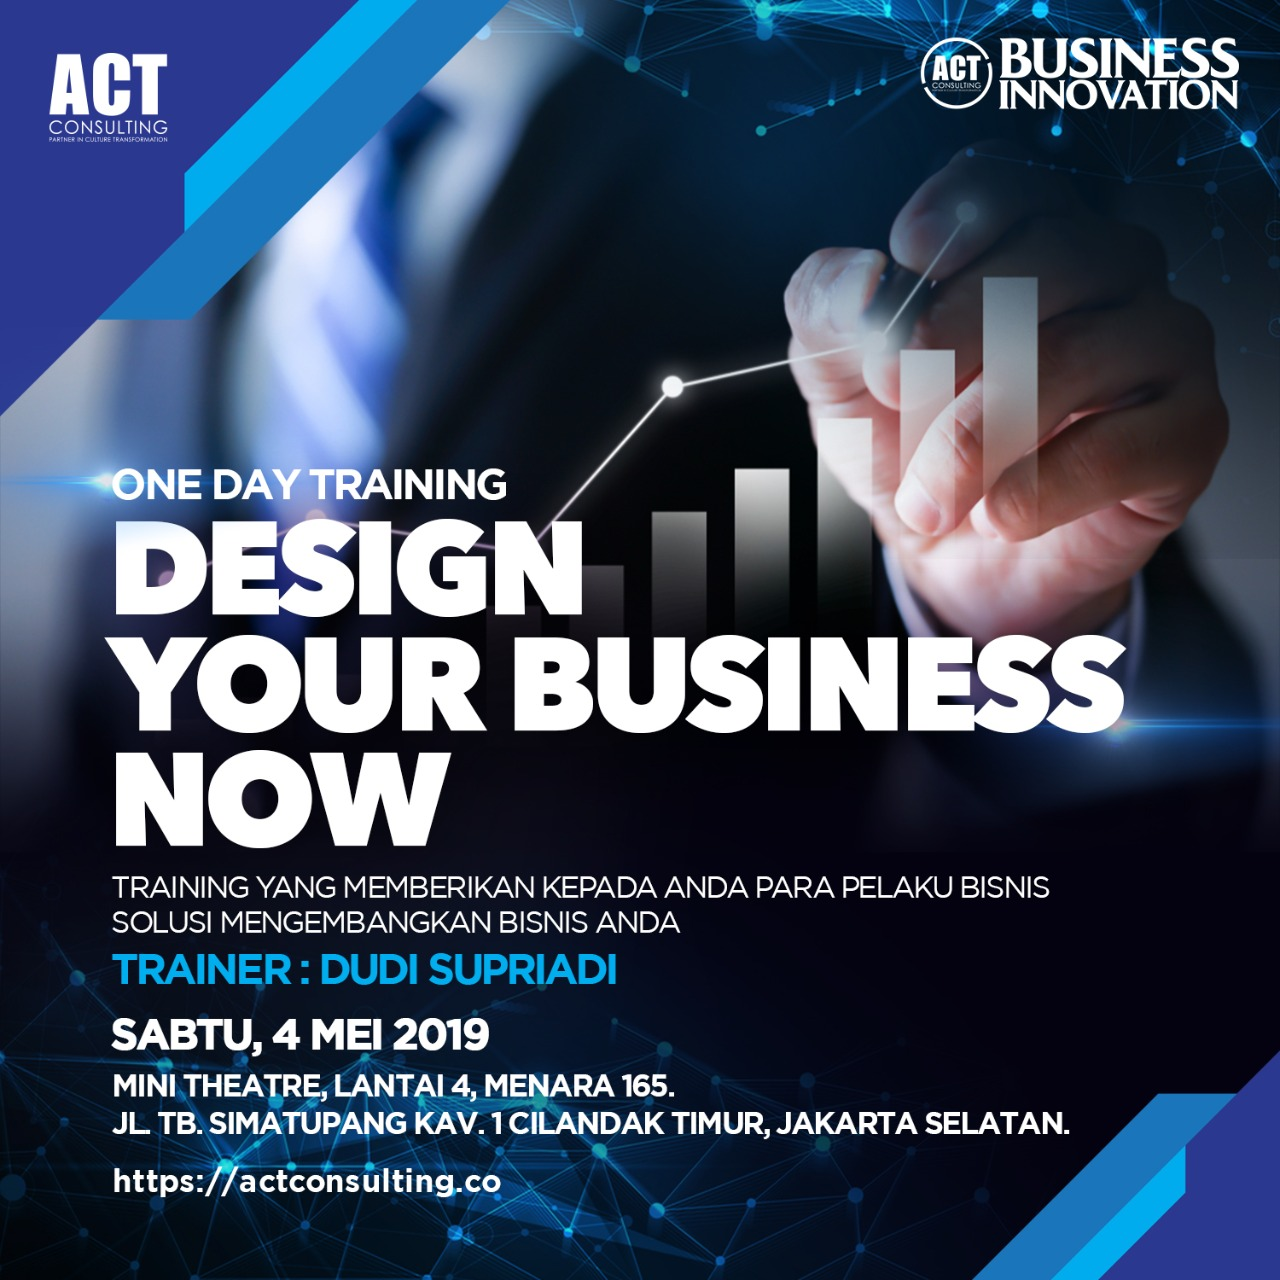 design your business now, business innovation, act consulting, ary ginanjar agustian